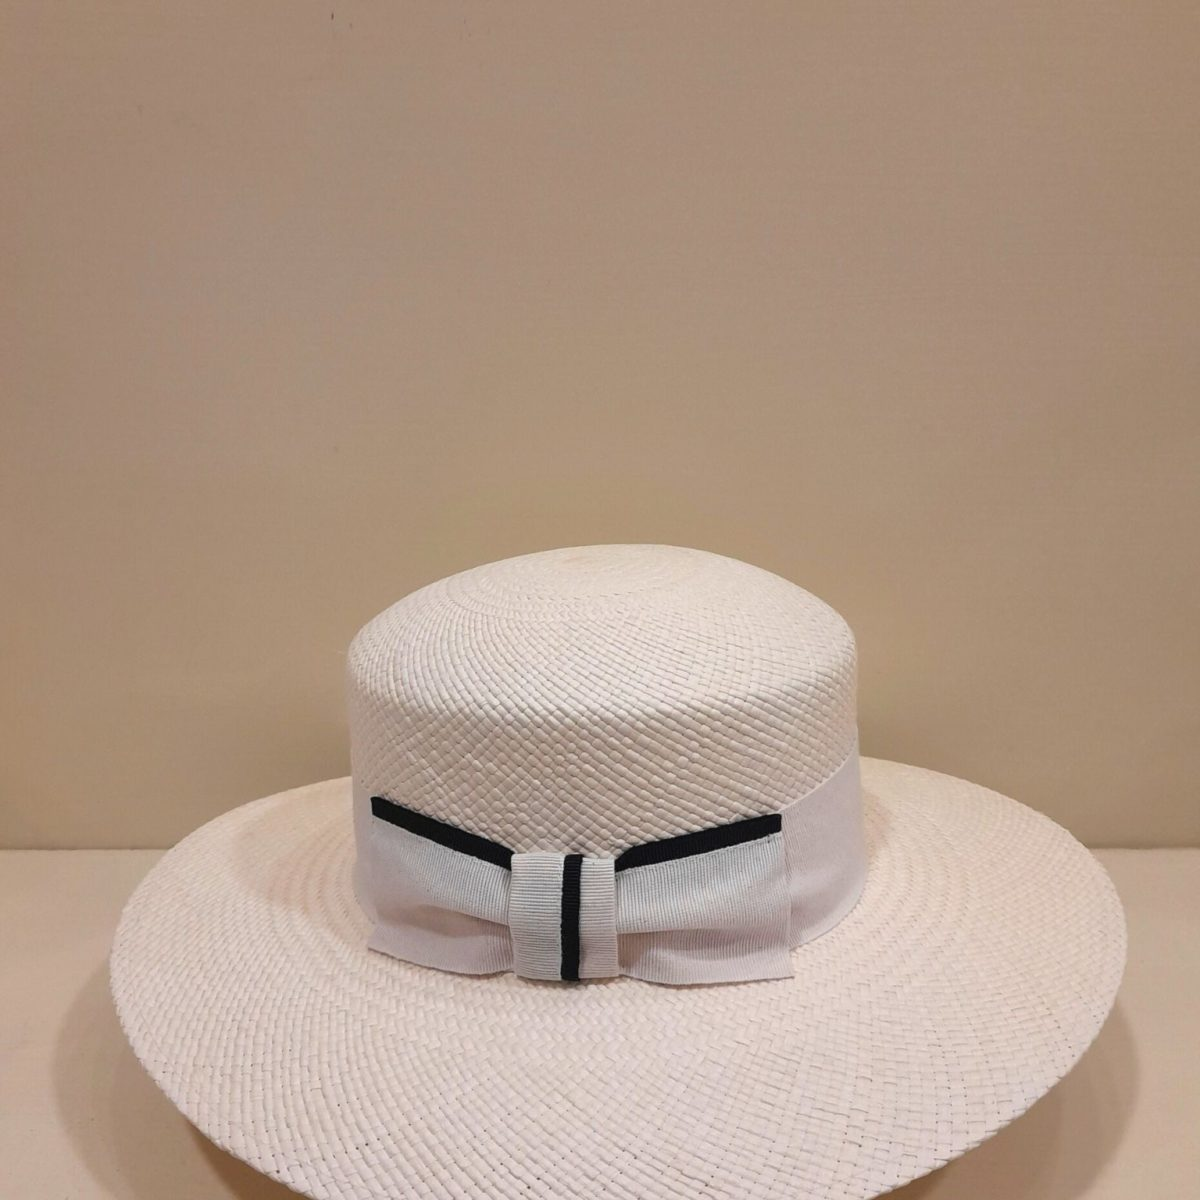 Straw Hat With A White Bow And A Black Strip